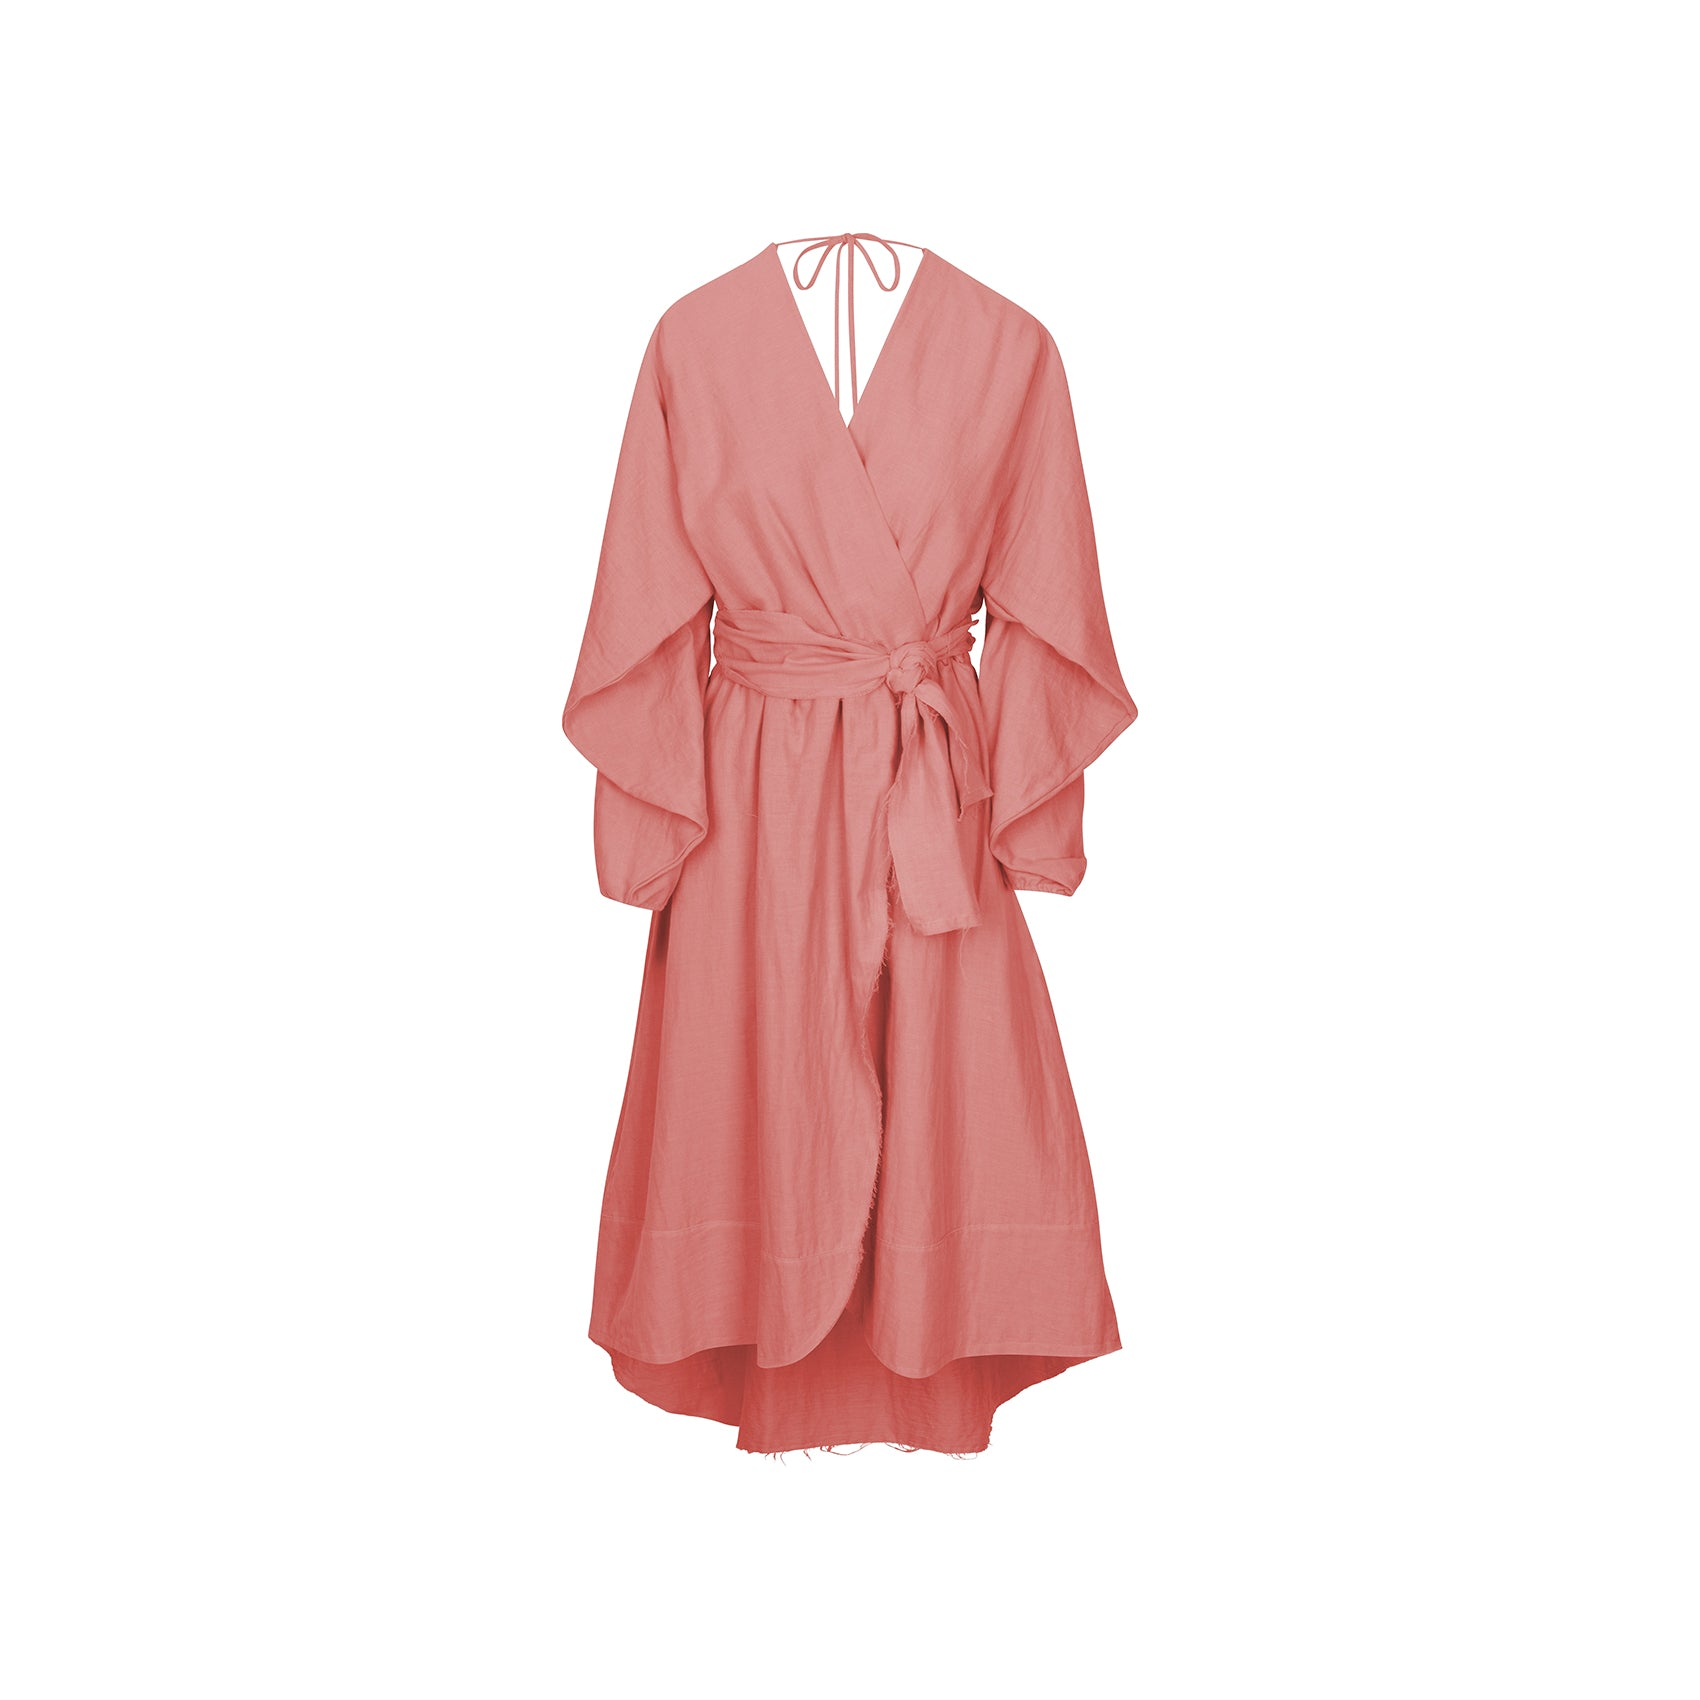 Conchas Dress in Rose